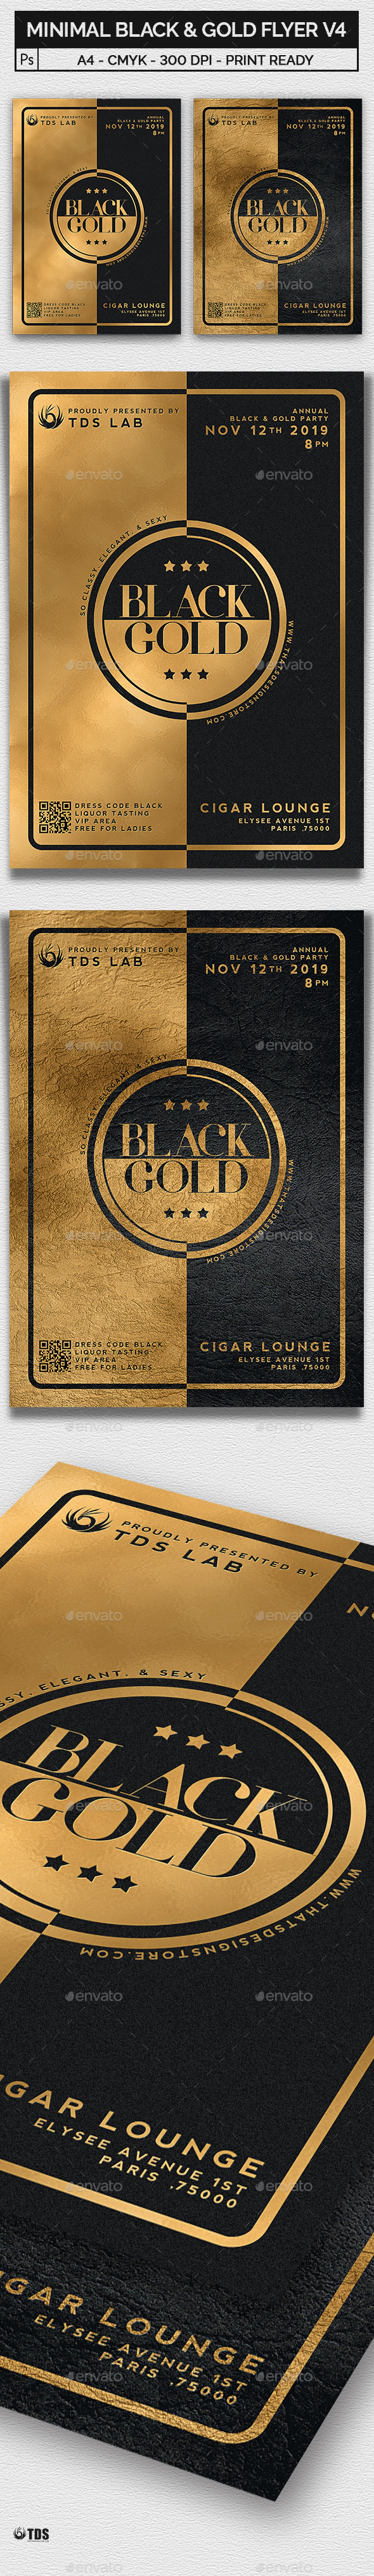 Minimal Black and Gold Flyer Template V4 - Clubs & Parties Events